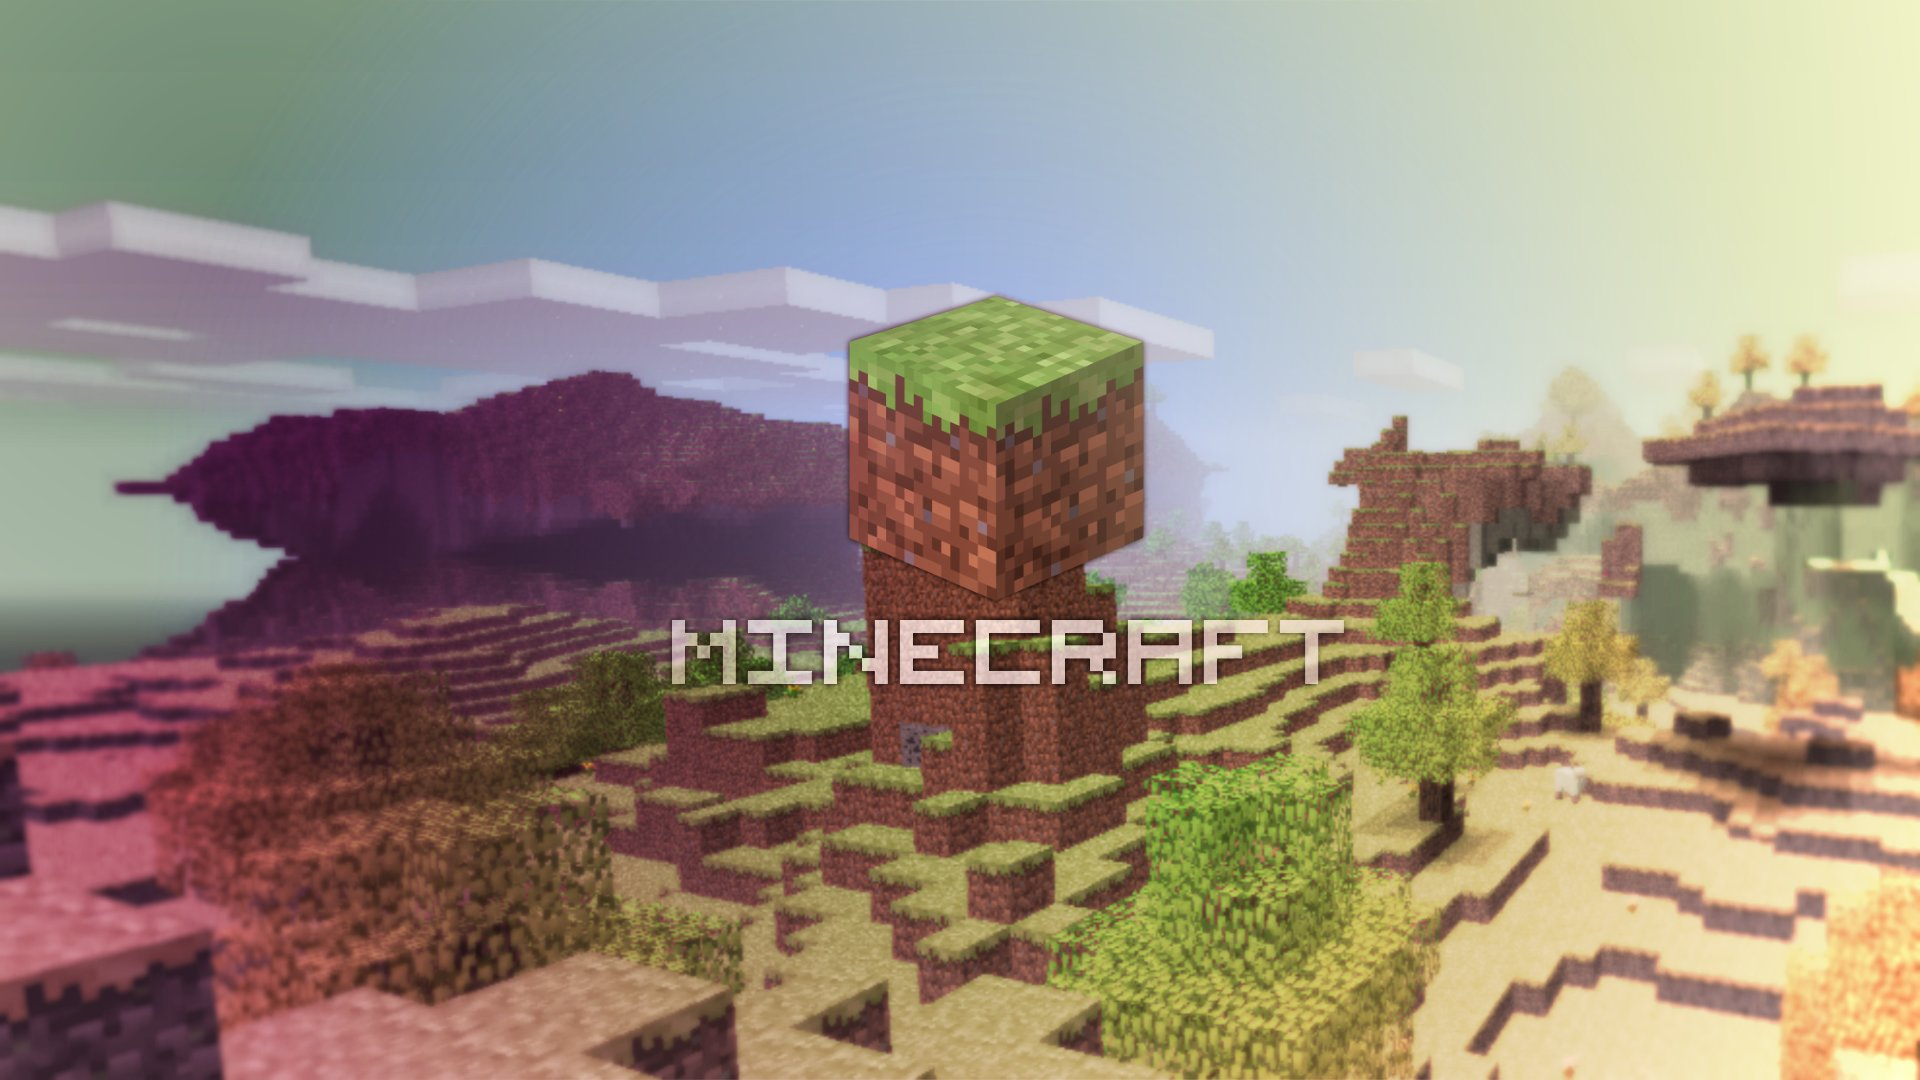 Download full hd 1920x1080 Minecraft PC background ID:385668 for free